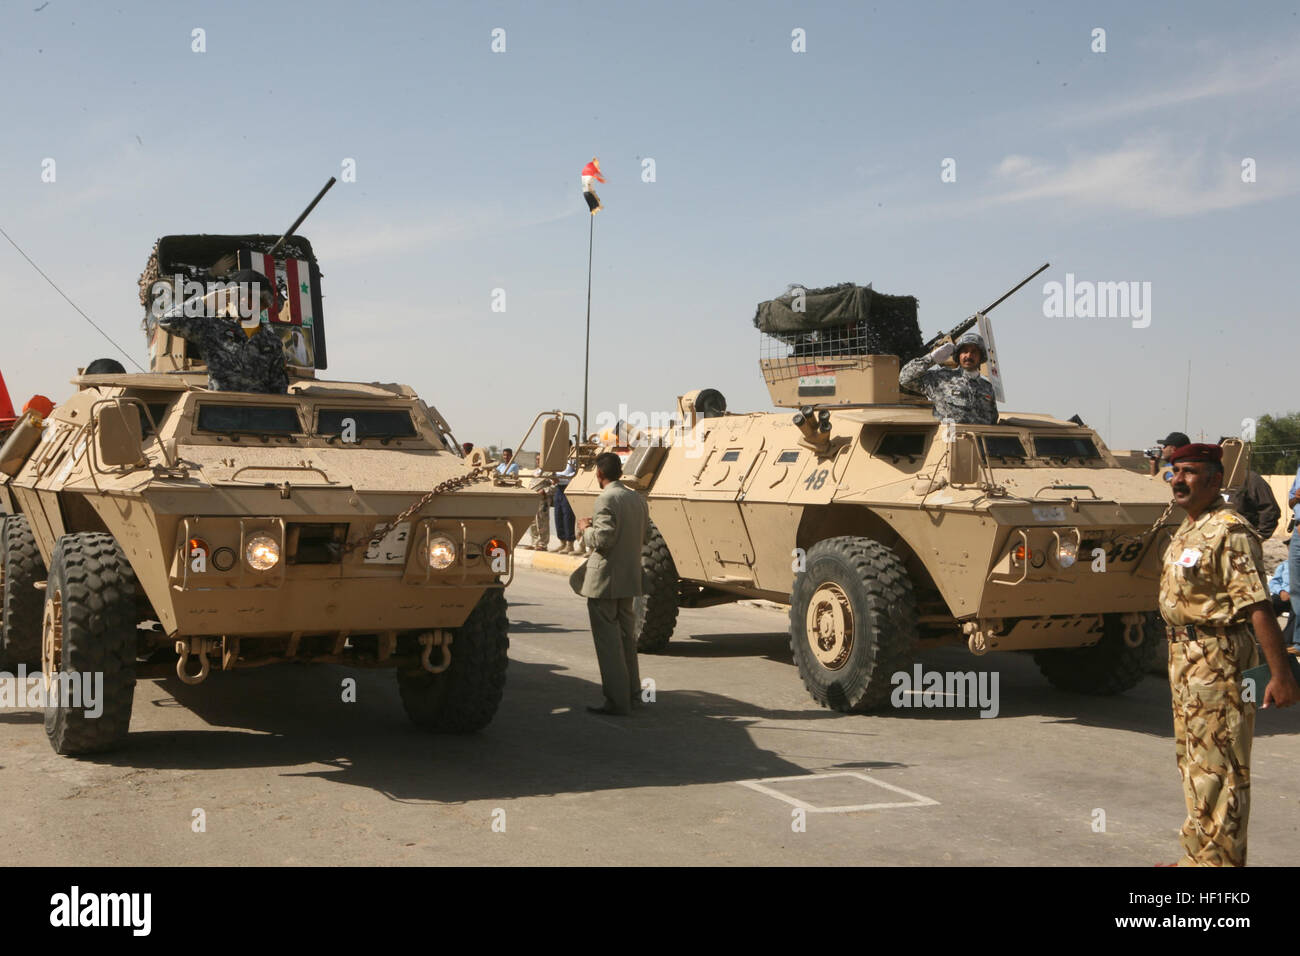 Iraqi Army Soldiers Drive Light Armored Vehicles In A Parade In Ar Ramadi  On October 23, 2007. The Parade Is For The Citizens Of Ar Ramadi, ...